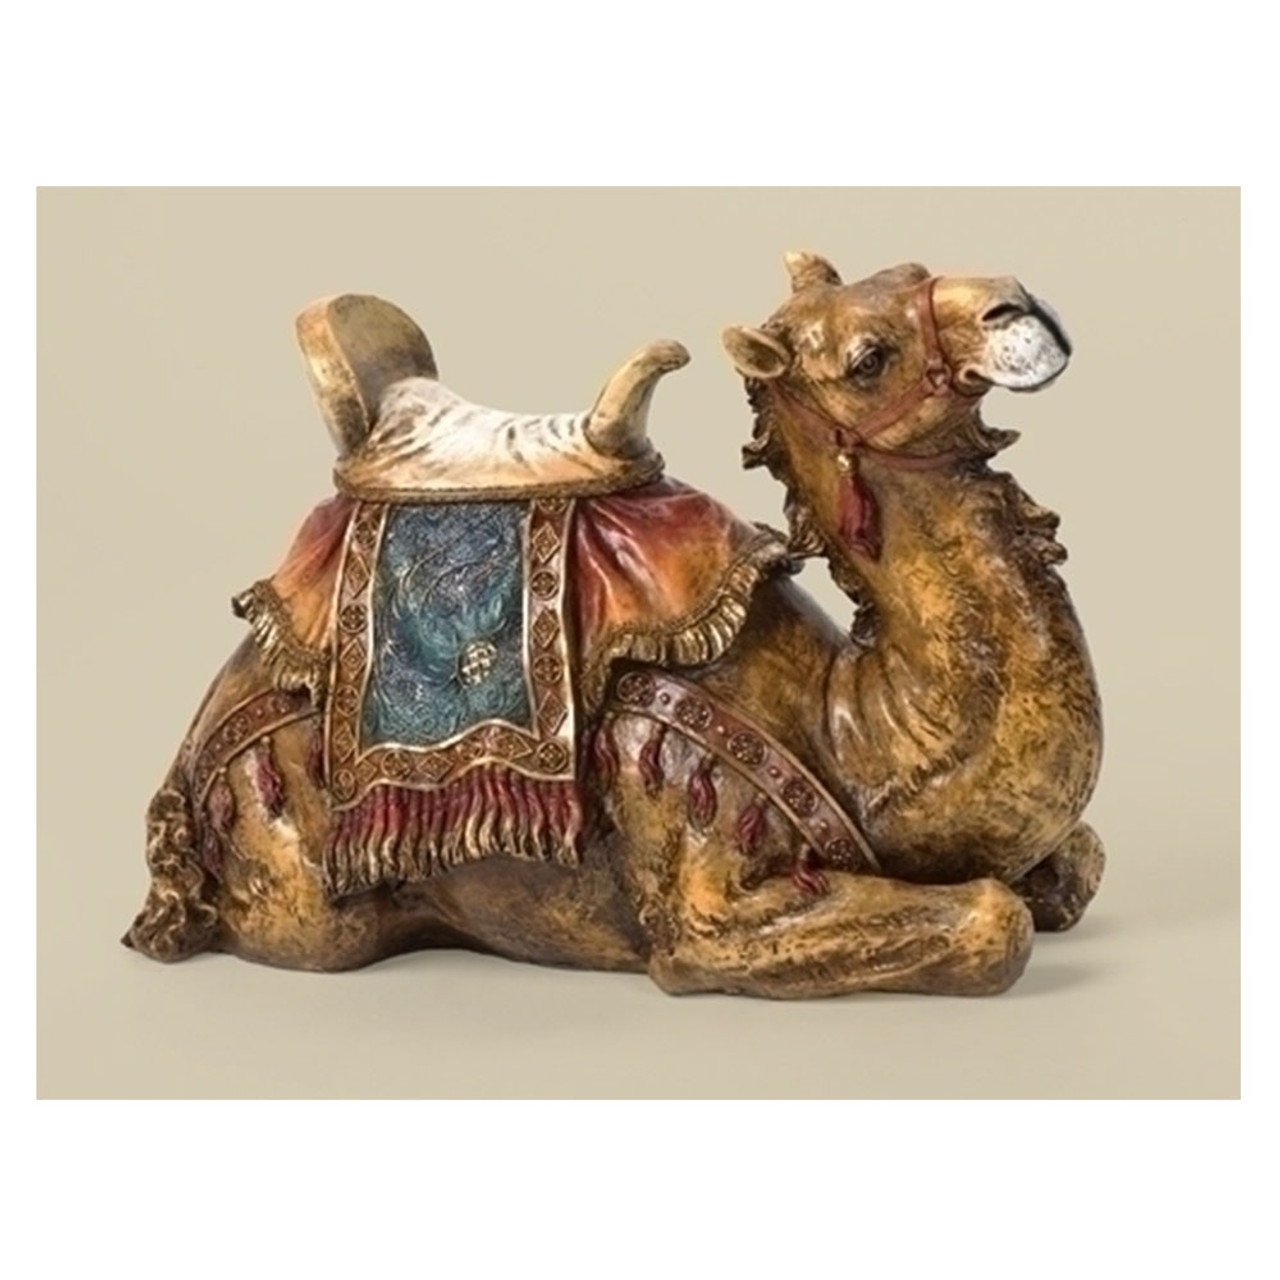 Colored Camel For 27IN Nativity